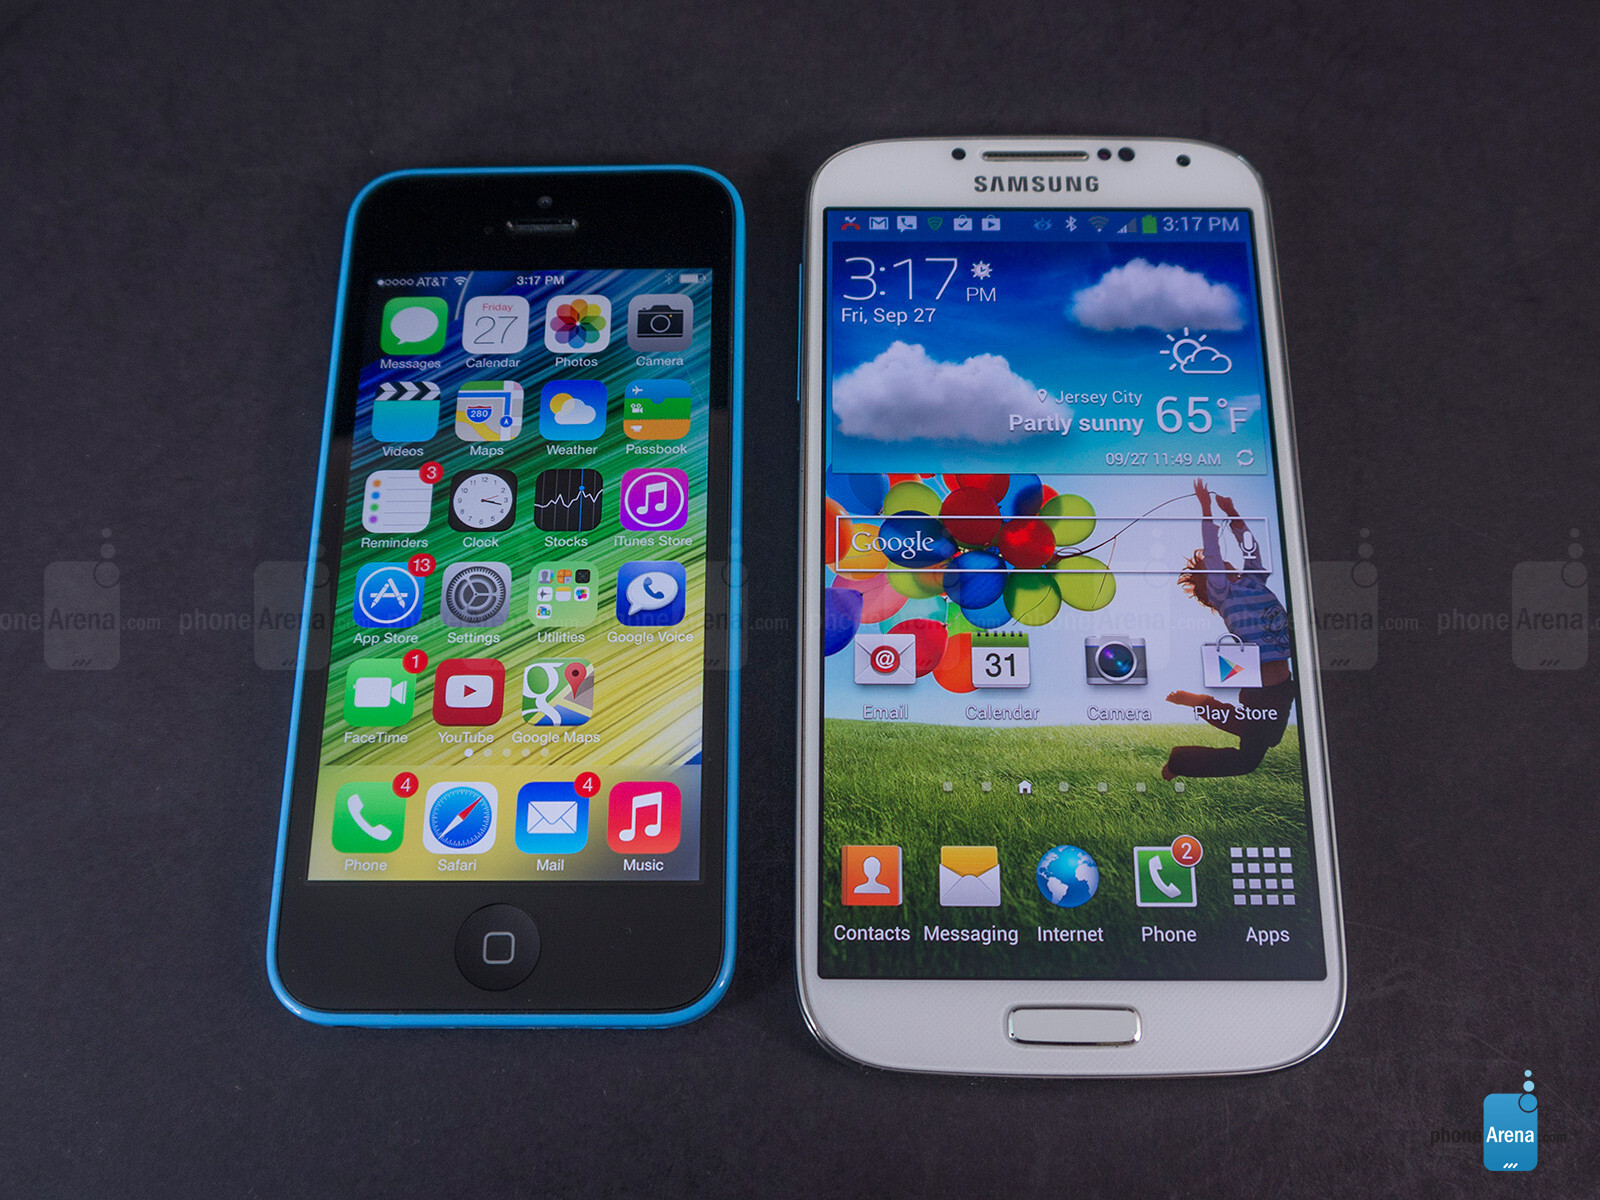 samsung vs iphone apple iphone 5c vs samsung galaxy s4 1823